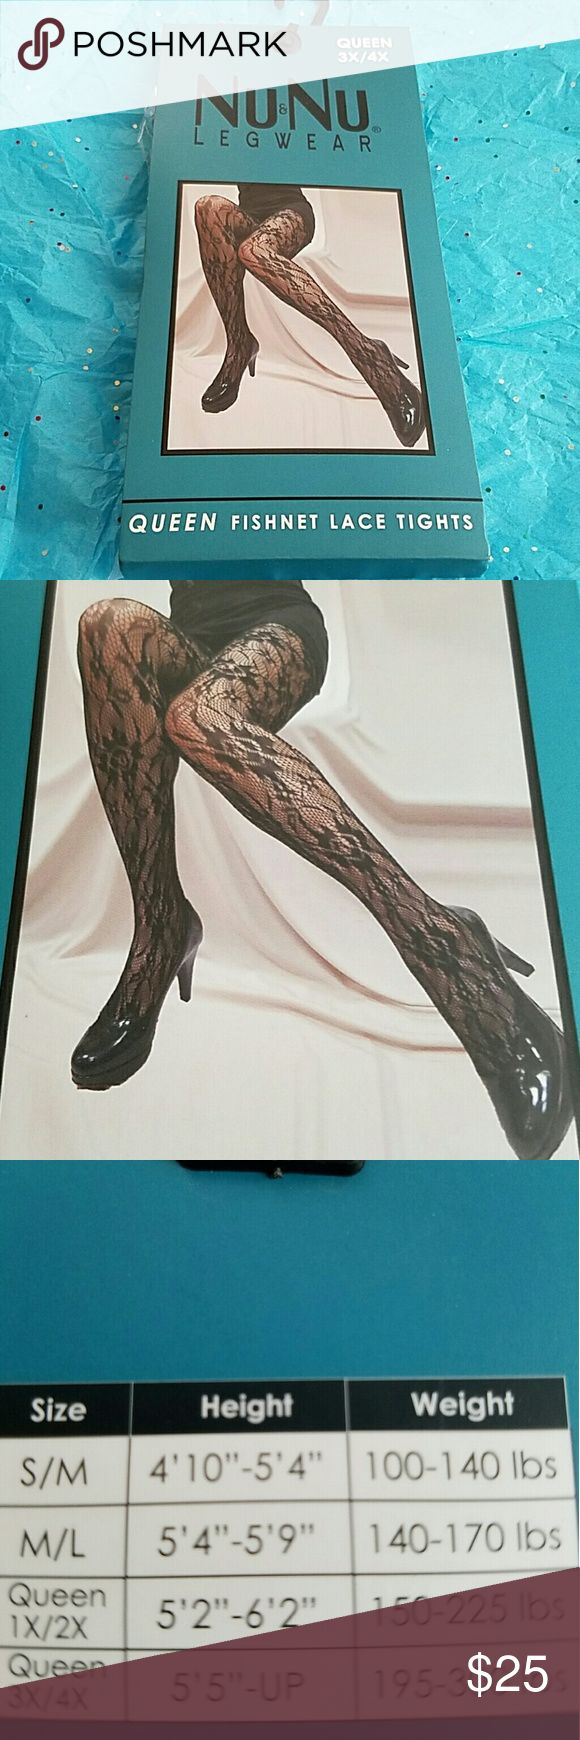 "3X/4X Queen size fishnet tights panty hose floral Offered is a sexy pair of black fishnet tights or panty hose with a Floral Lace pattern. New with tags and in immaculate condition.  Made by Nu&Nu. Queen size 3X/4X. 5'5"" -up, 195 - 300 lbs. 11 styles available so check out my other listings.  Style #4 Nu&Nu Accessories Hosiery & Socks"